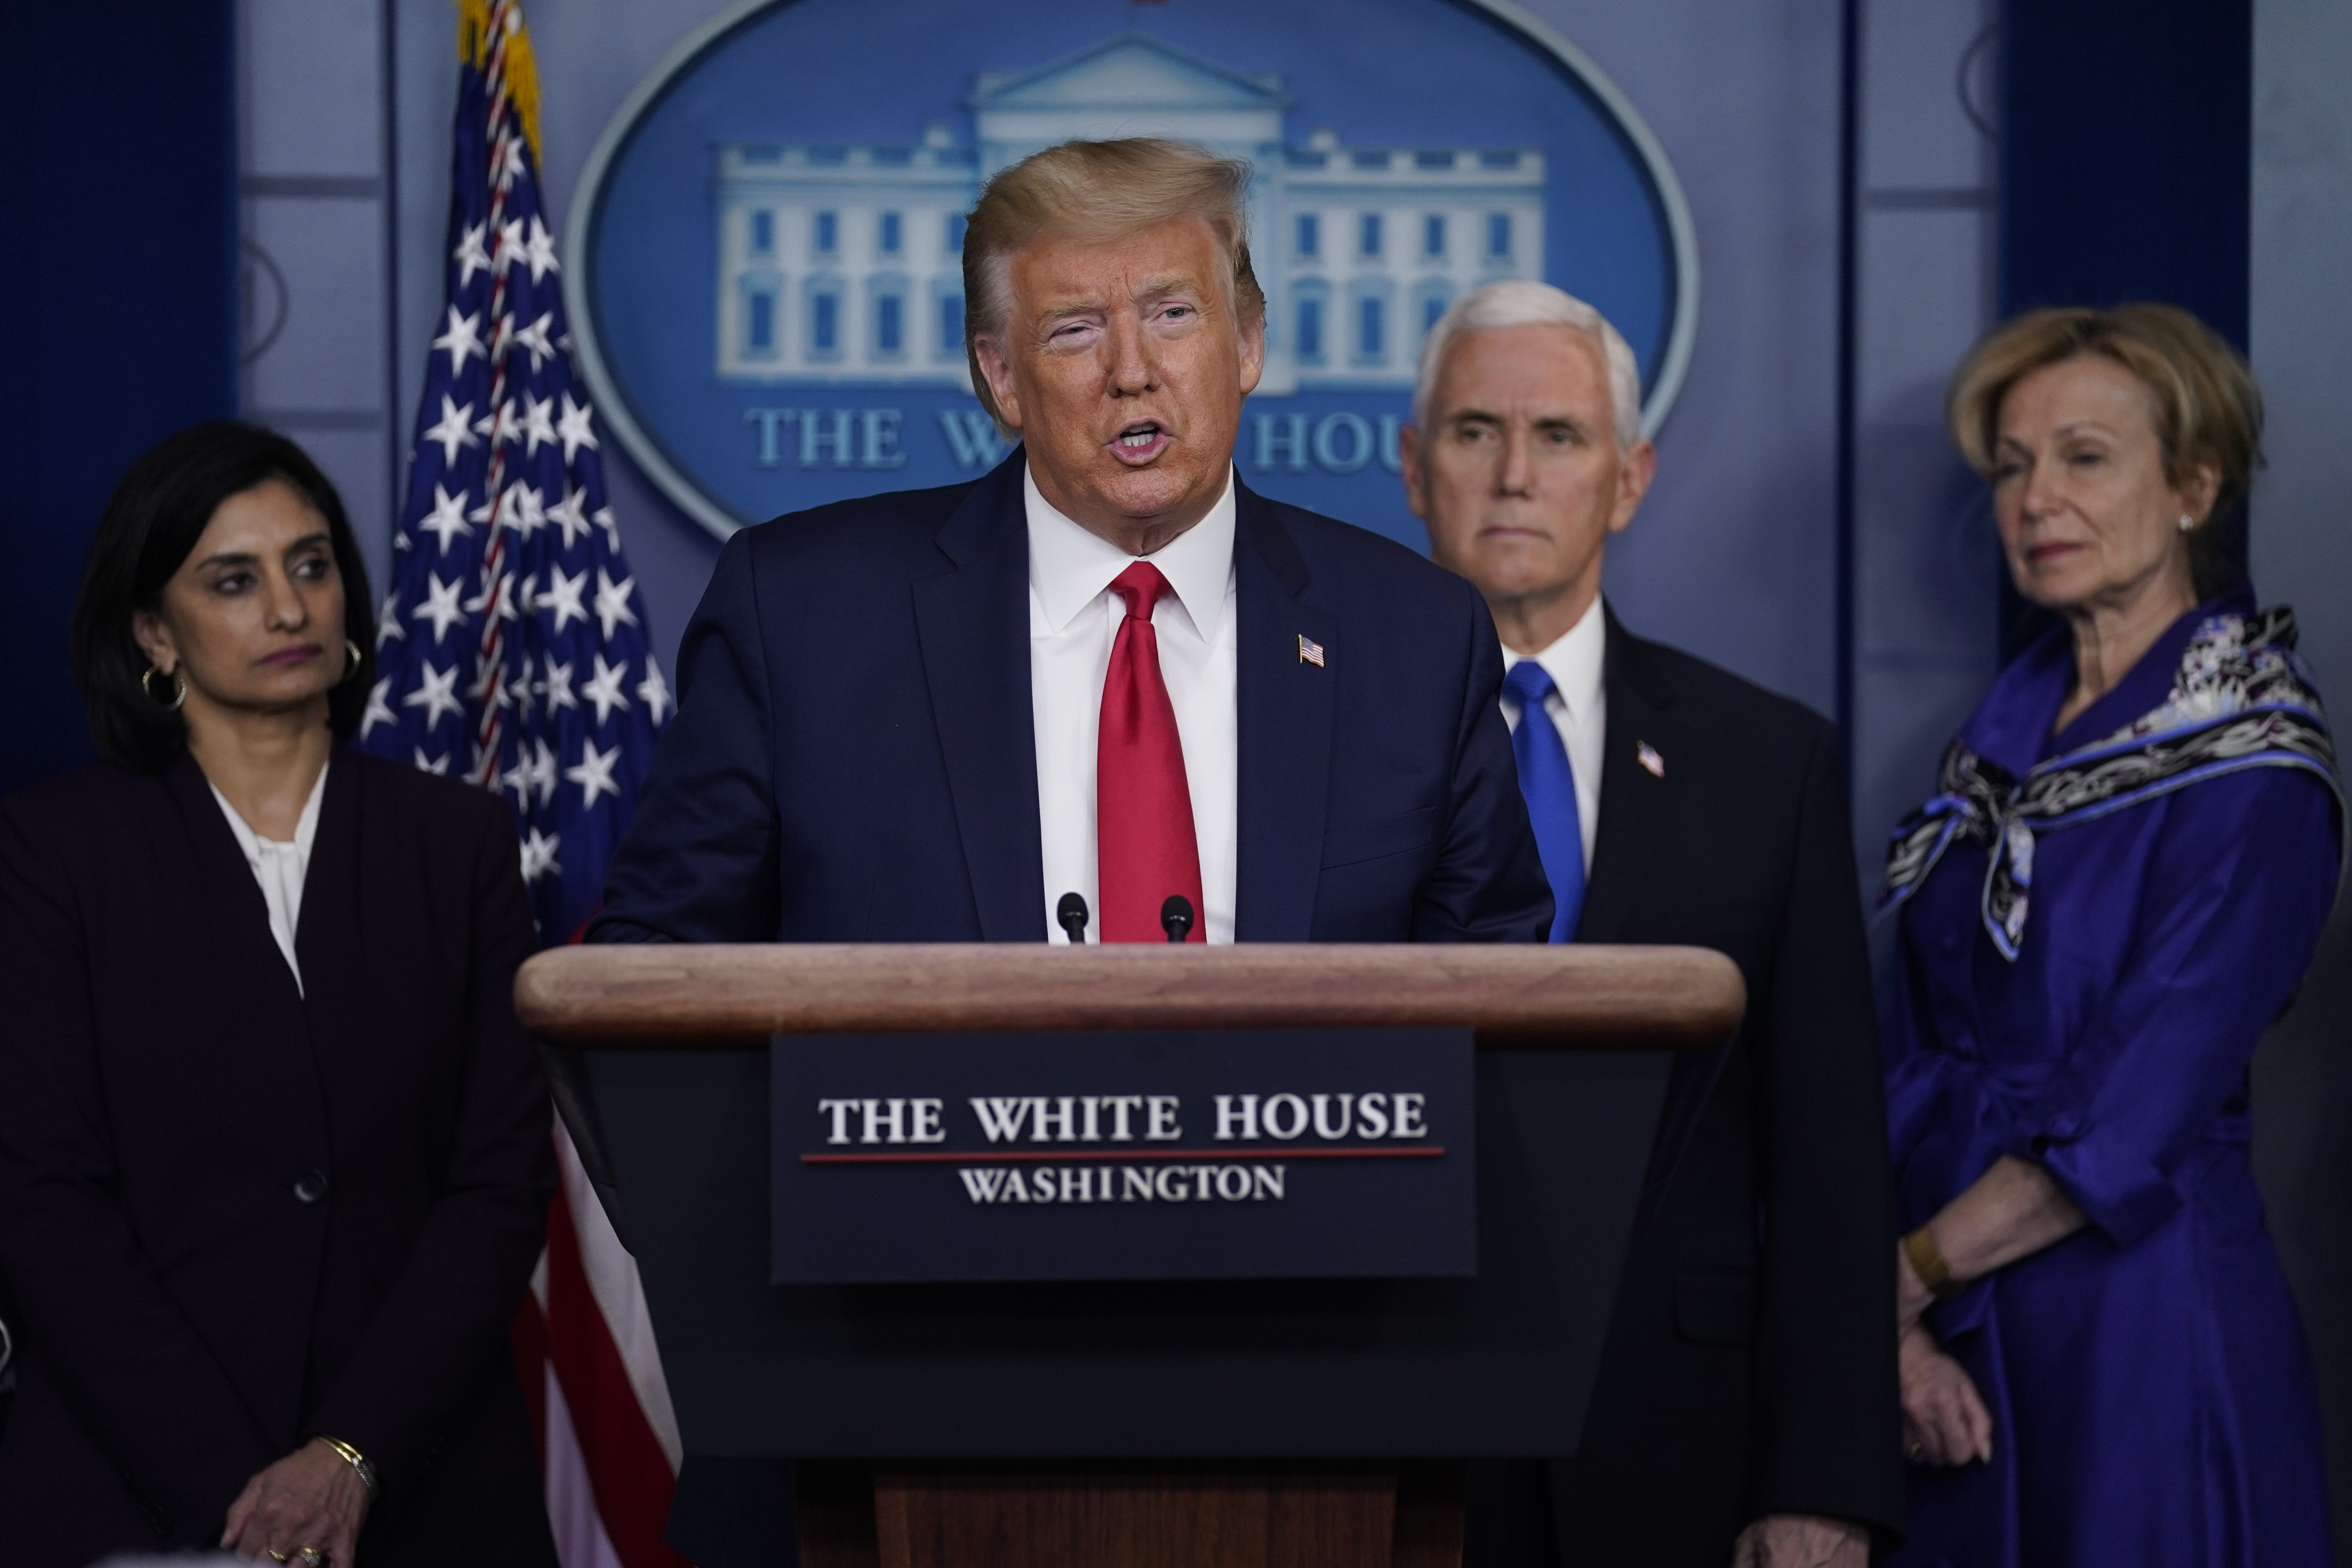 President Donald Trump speaks during press briefing with the Coronavirus Task Force, at the White House, on March 18, 2020, in Washington.